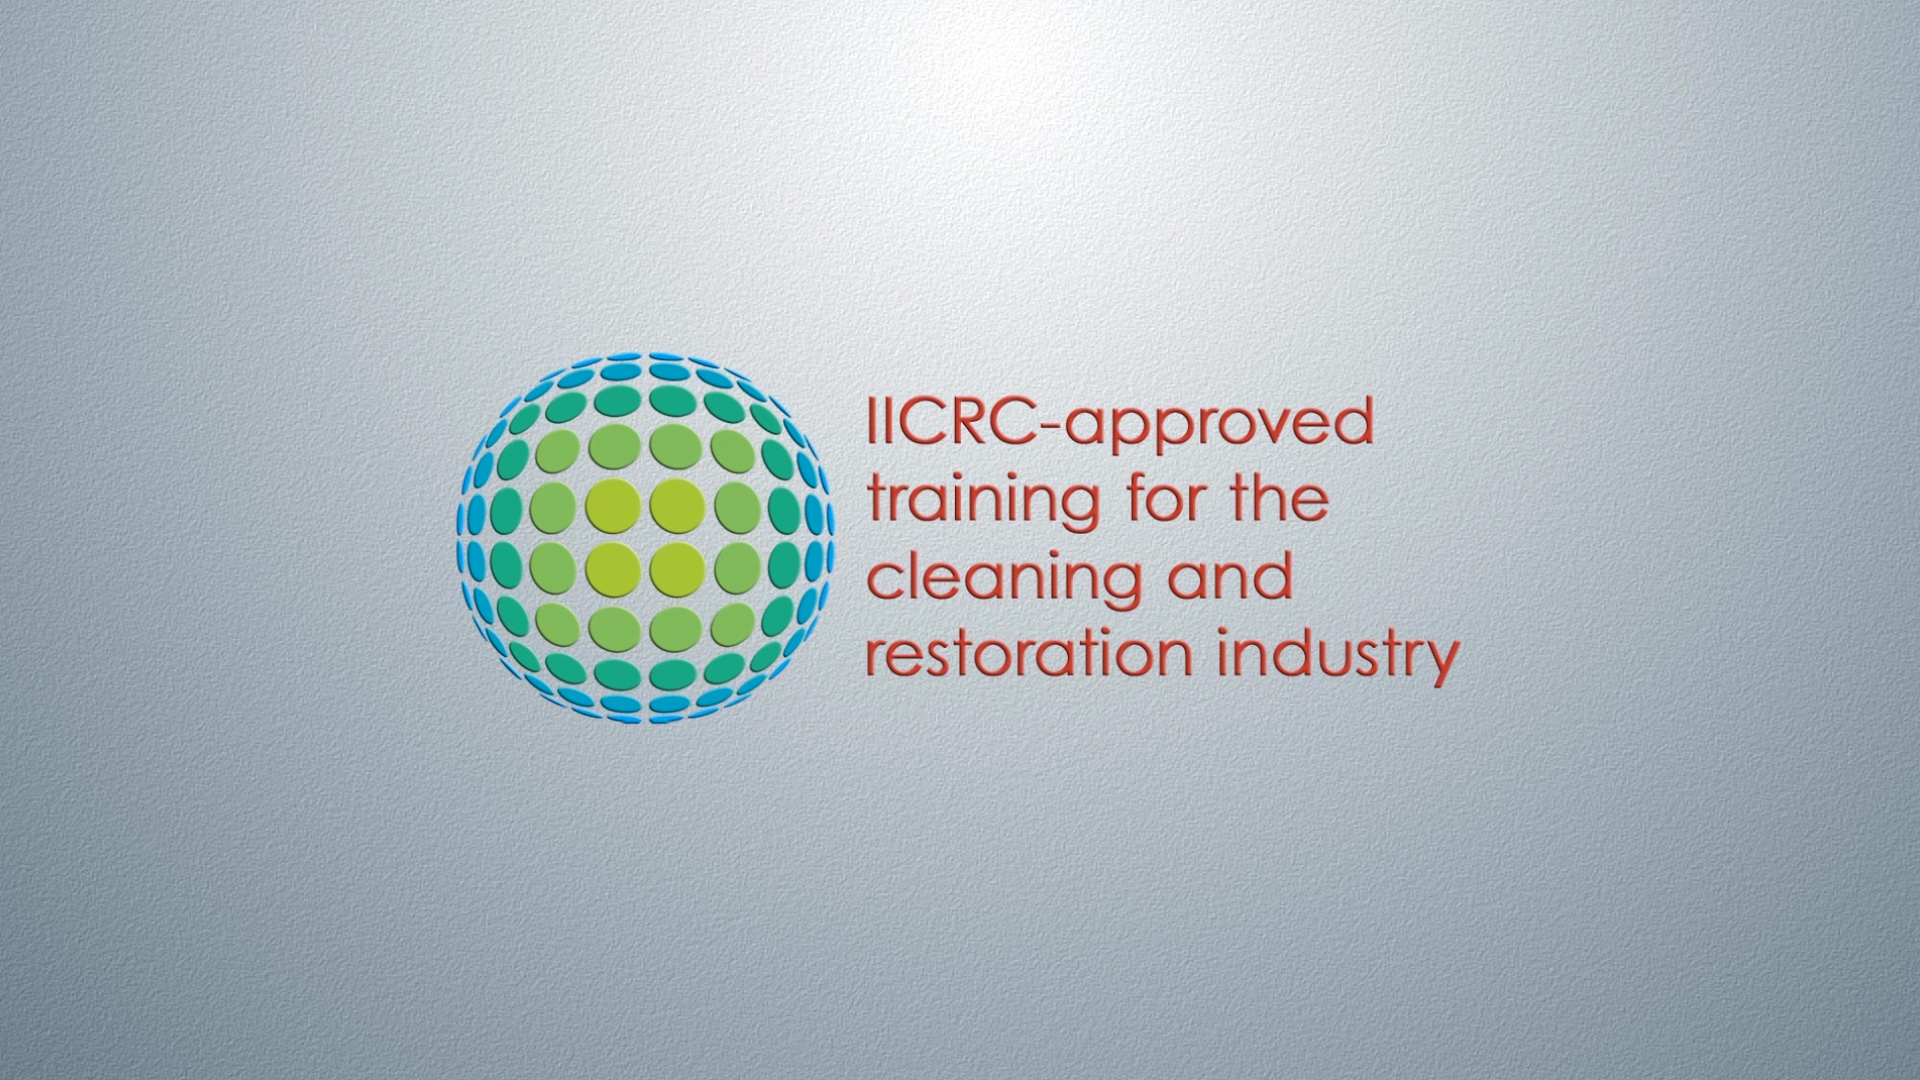 IICRC-approved training for the cleaning and restoration industry